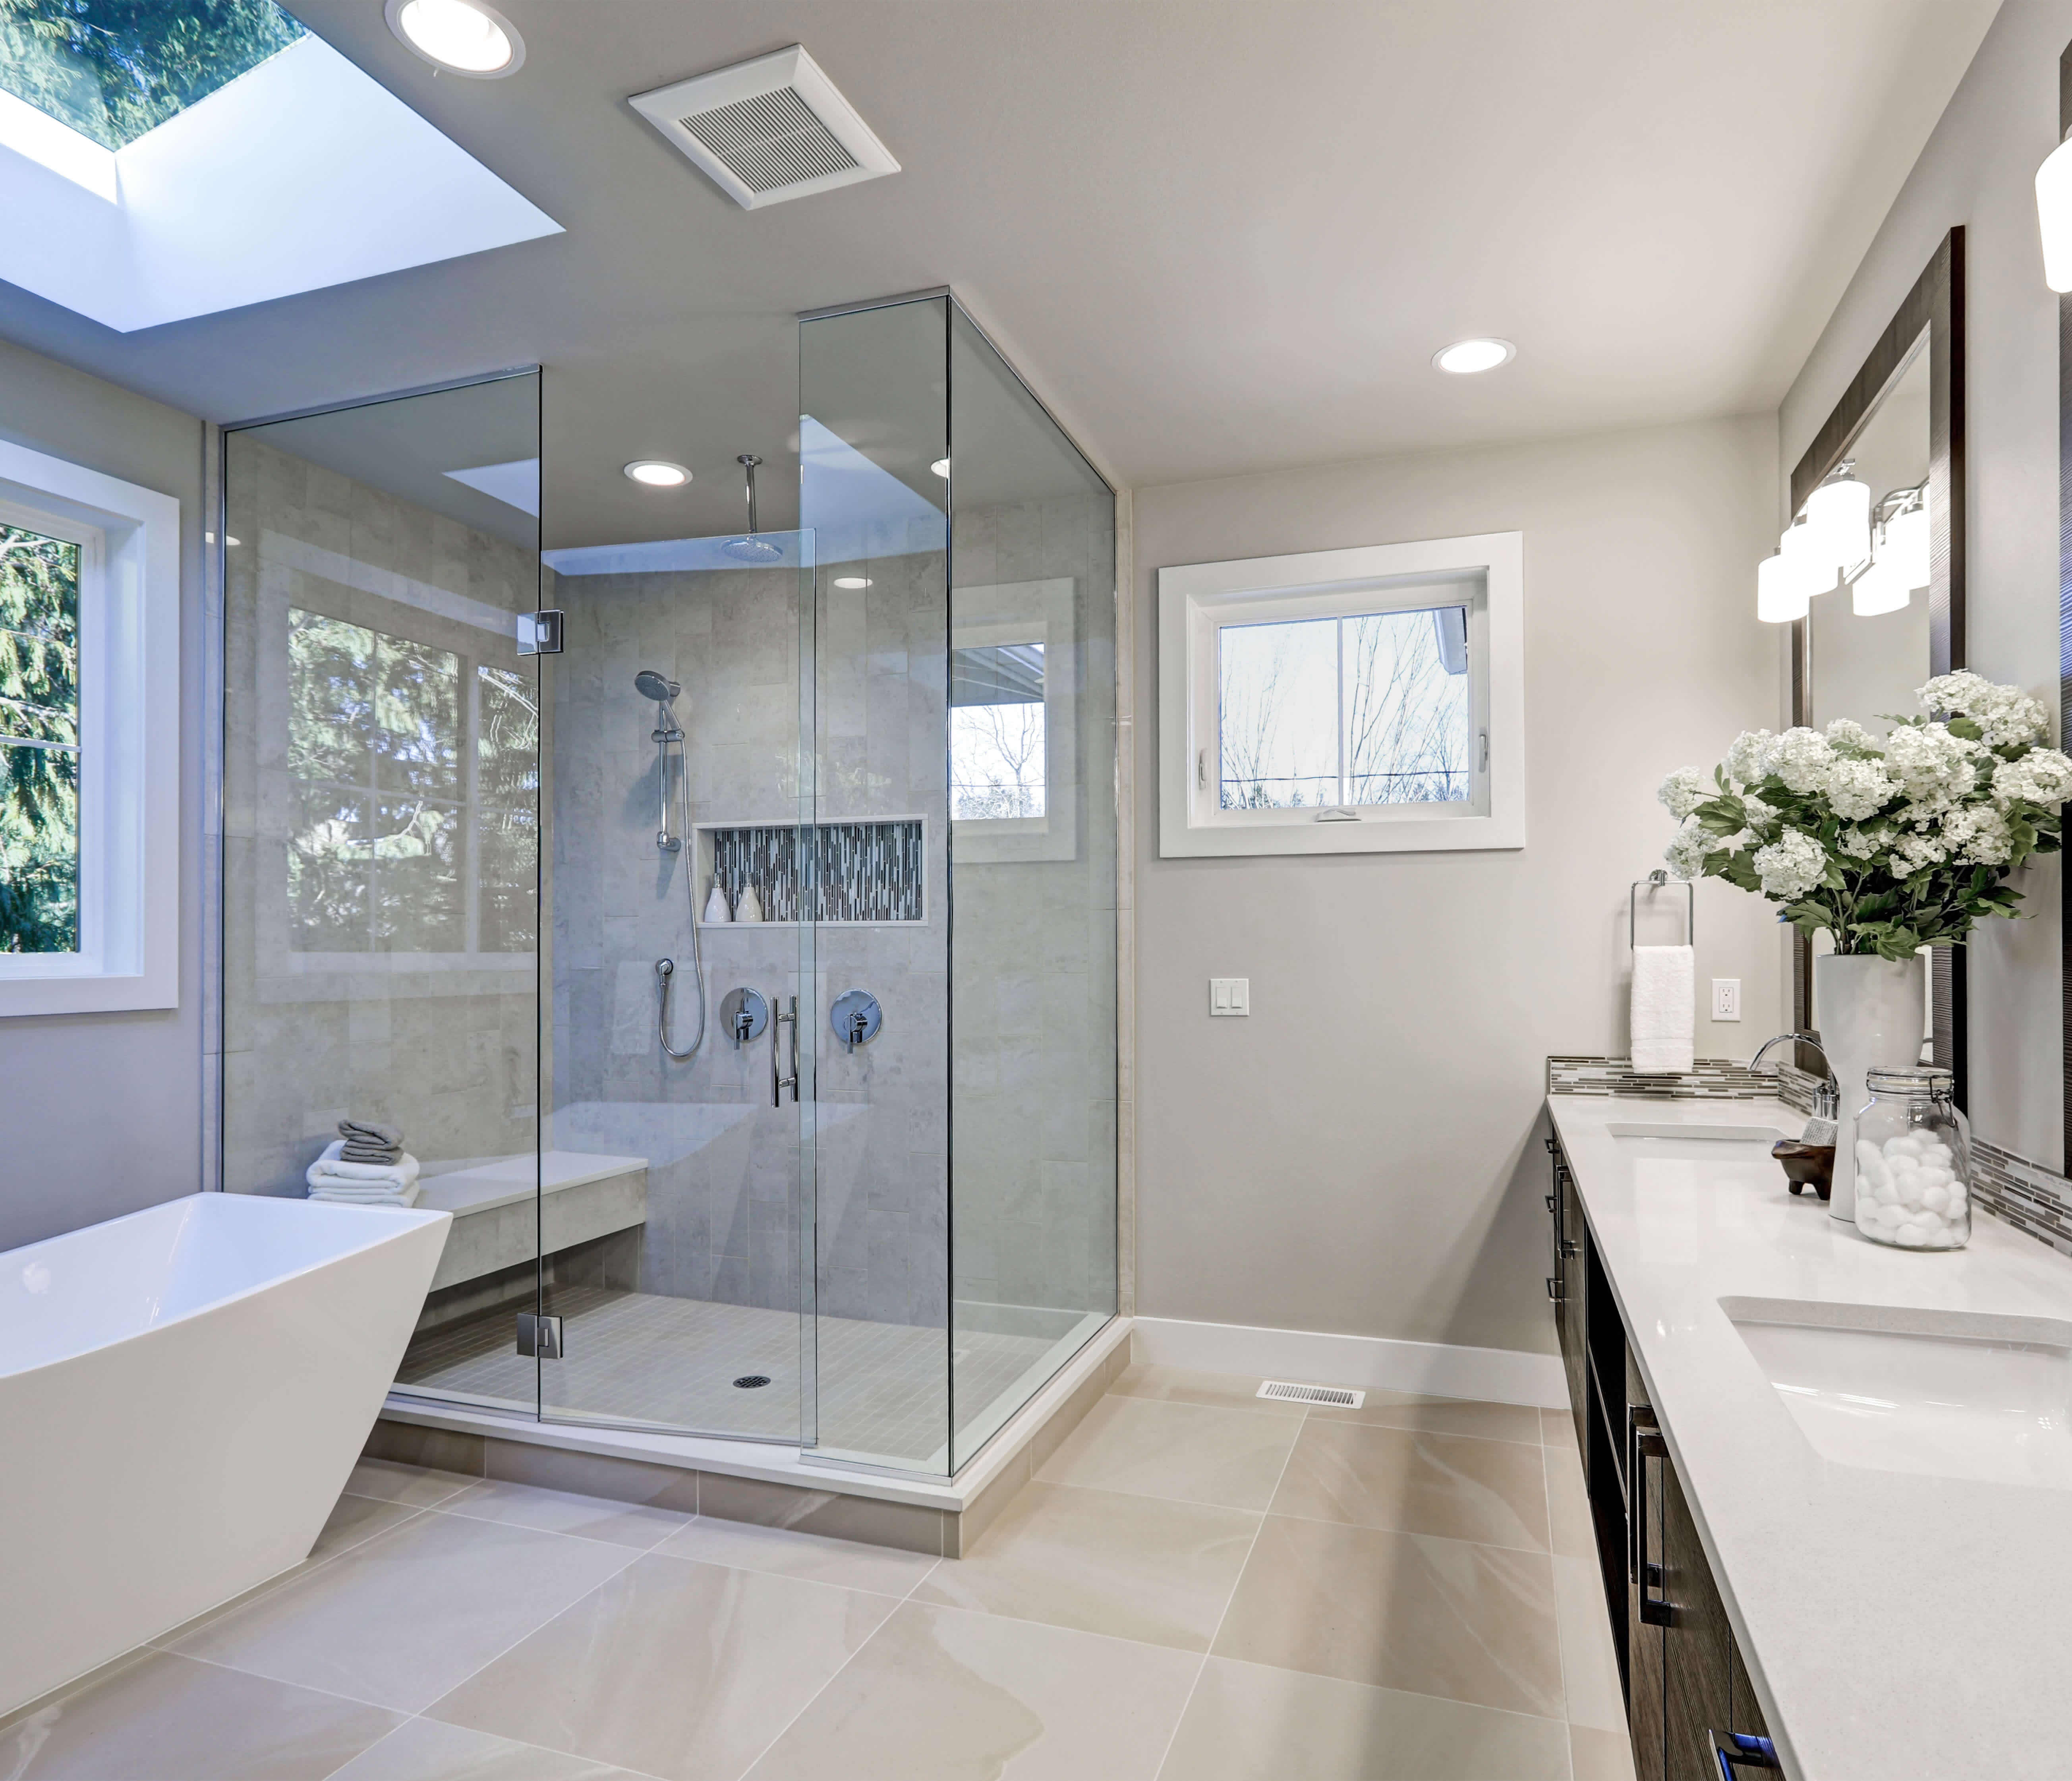 The Bathroom Remodeling Ideas That Need Consideration Professional And Design